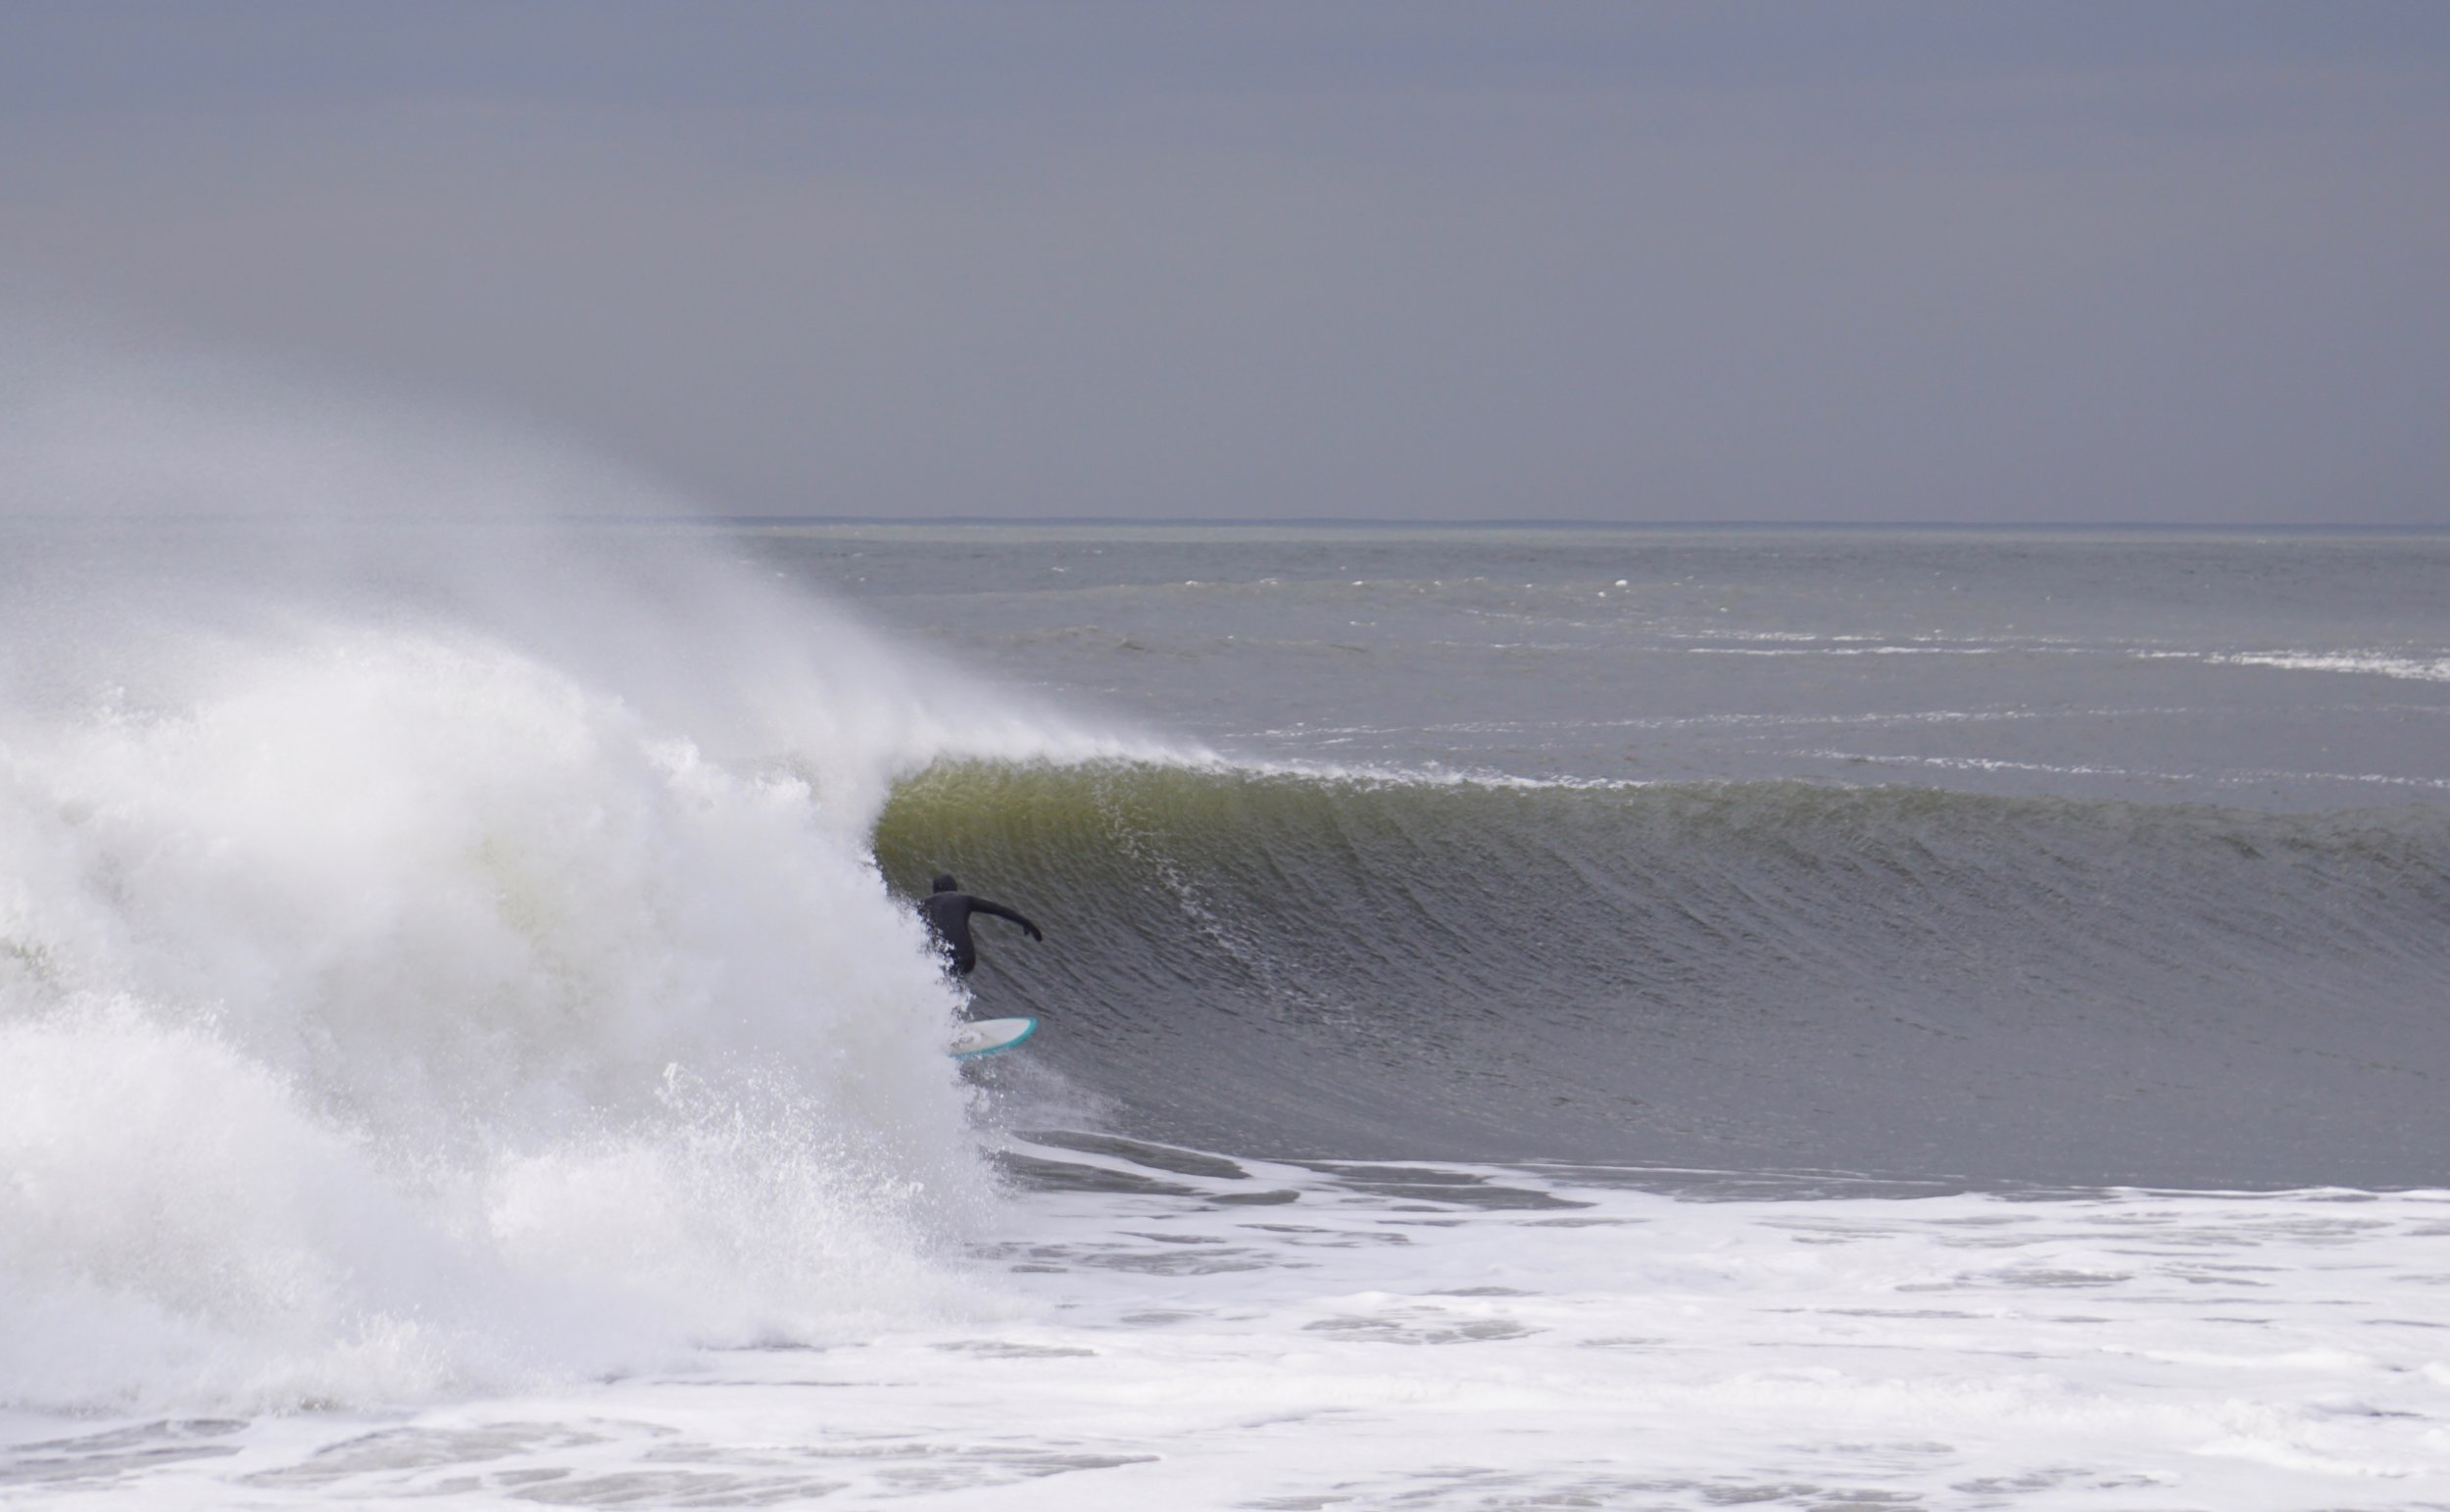 Me, Dion Mattison, on a Rockaway screamer last February in a hooded 5/4, 7mm gloves and boots. Pic: JP Phillips